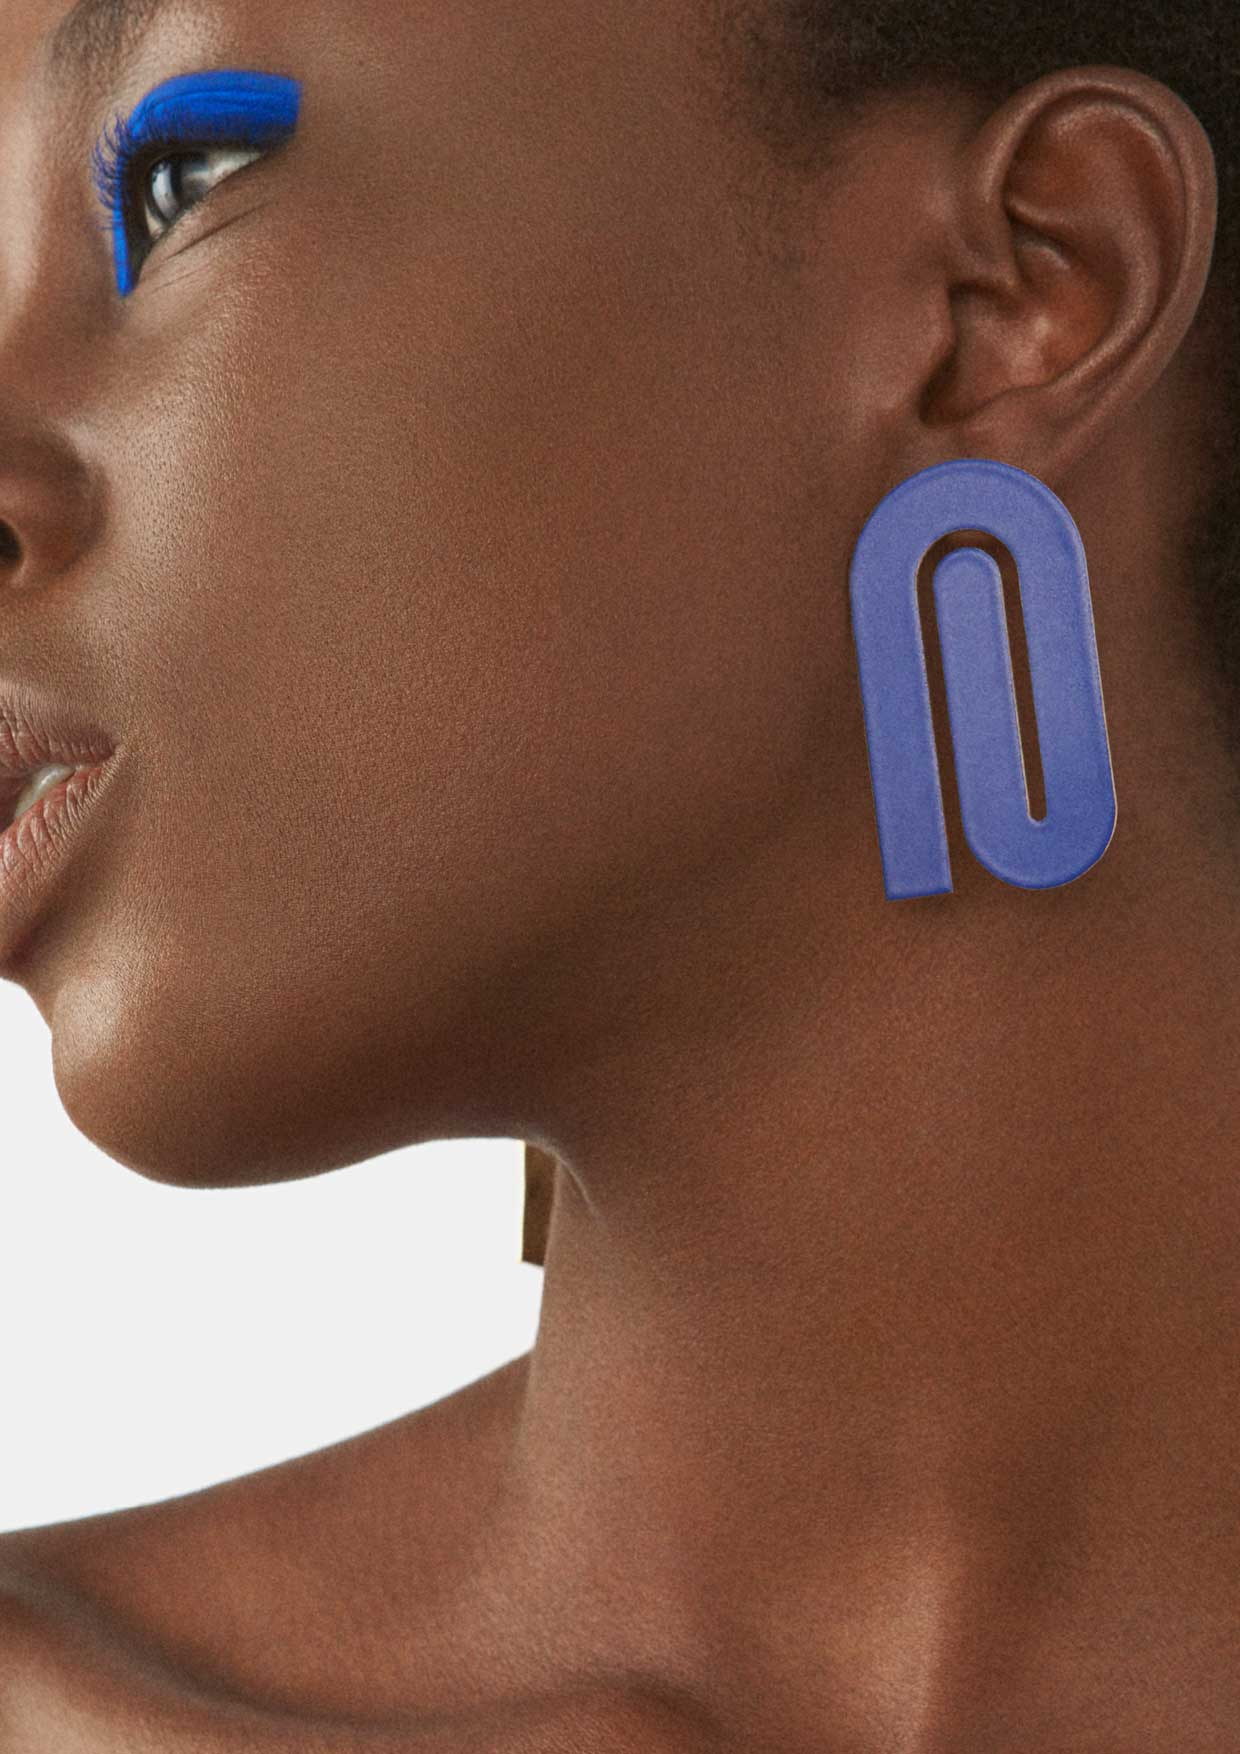 say hi to_ Amelie Riech from Uncommon Matters and the earring from the Bold Rythm collection